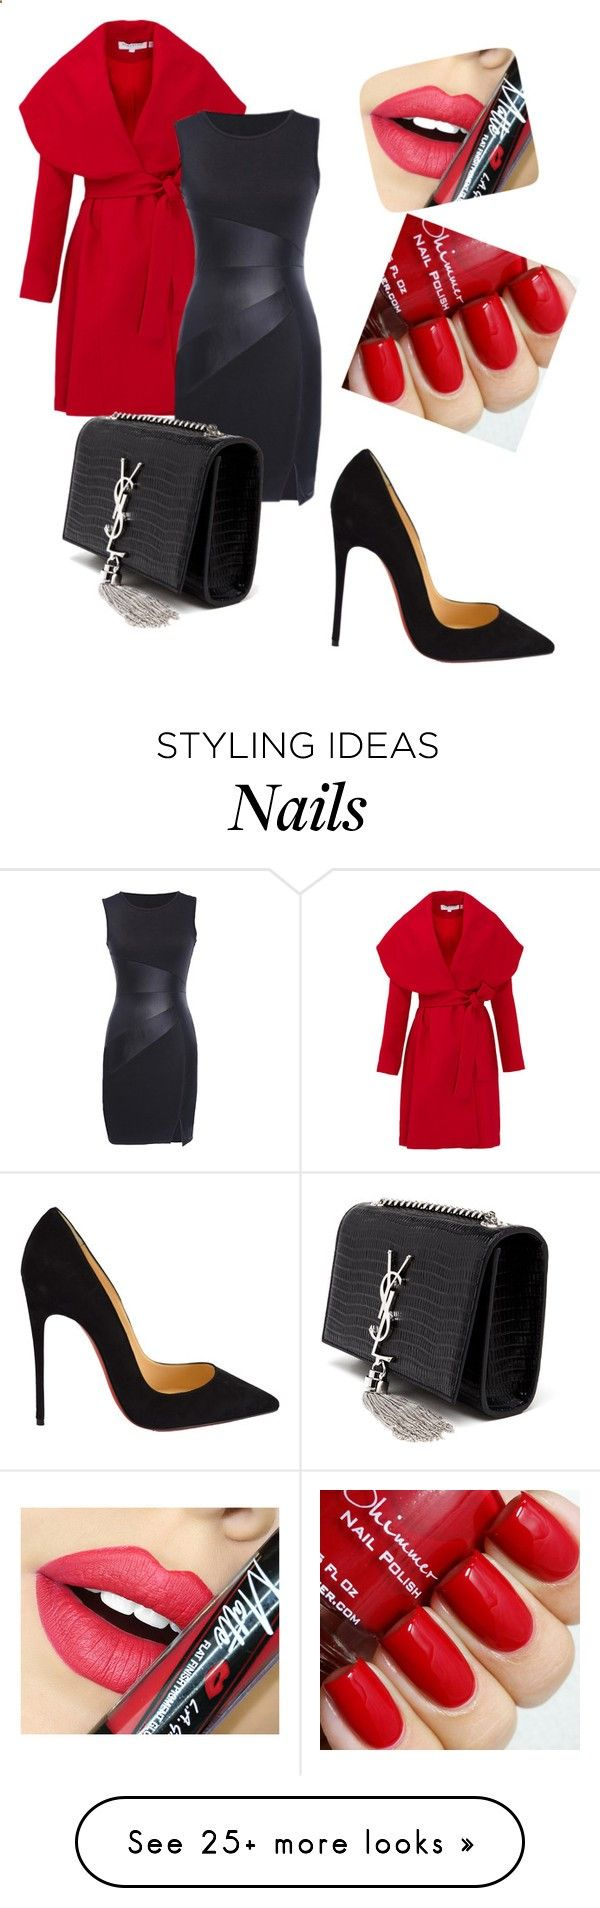 Untitled #381 by srlangley on Polyvore featuring Keepsake the Label, Christian Louboutin, Yves Saint Laurent, Fiebiger, women's clothing, women's fashion, women, female, woman and misses